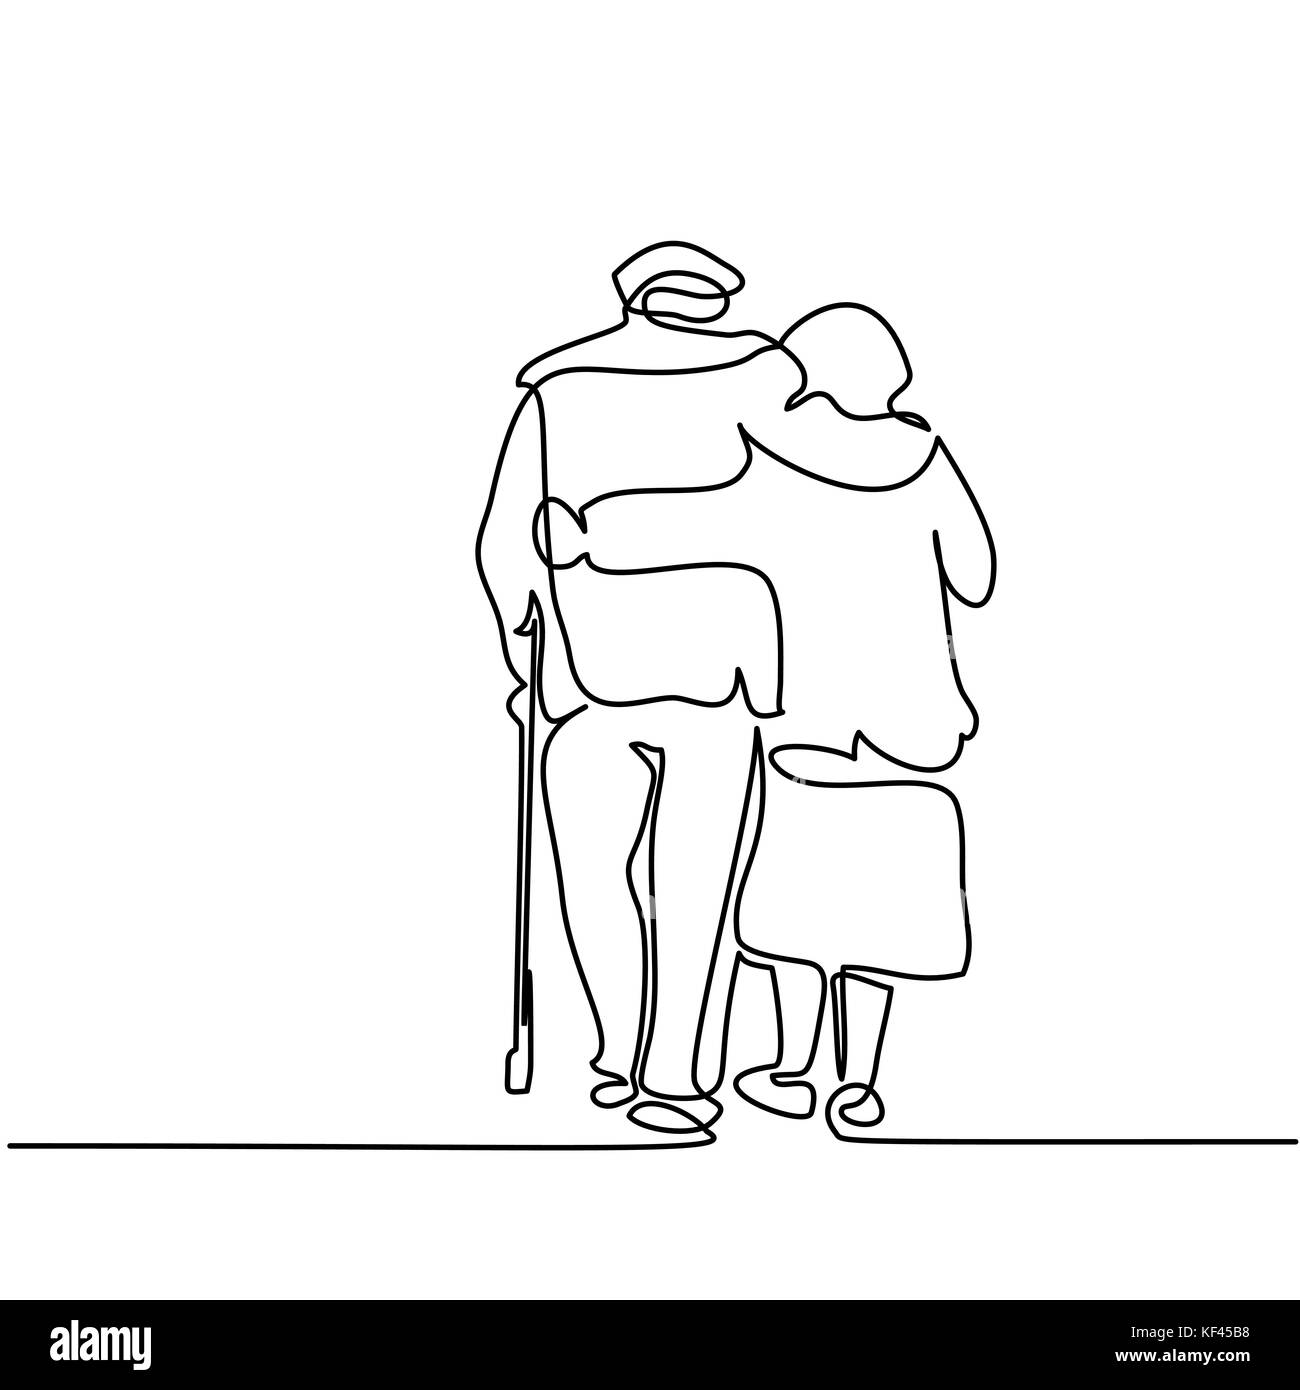 Line Art Design Illustration : Elderly vector vectors stock photos